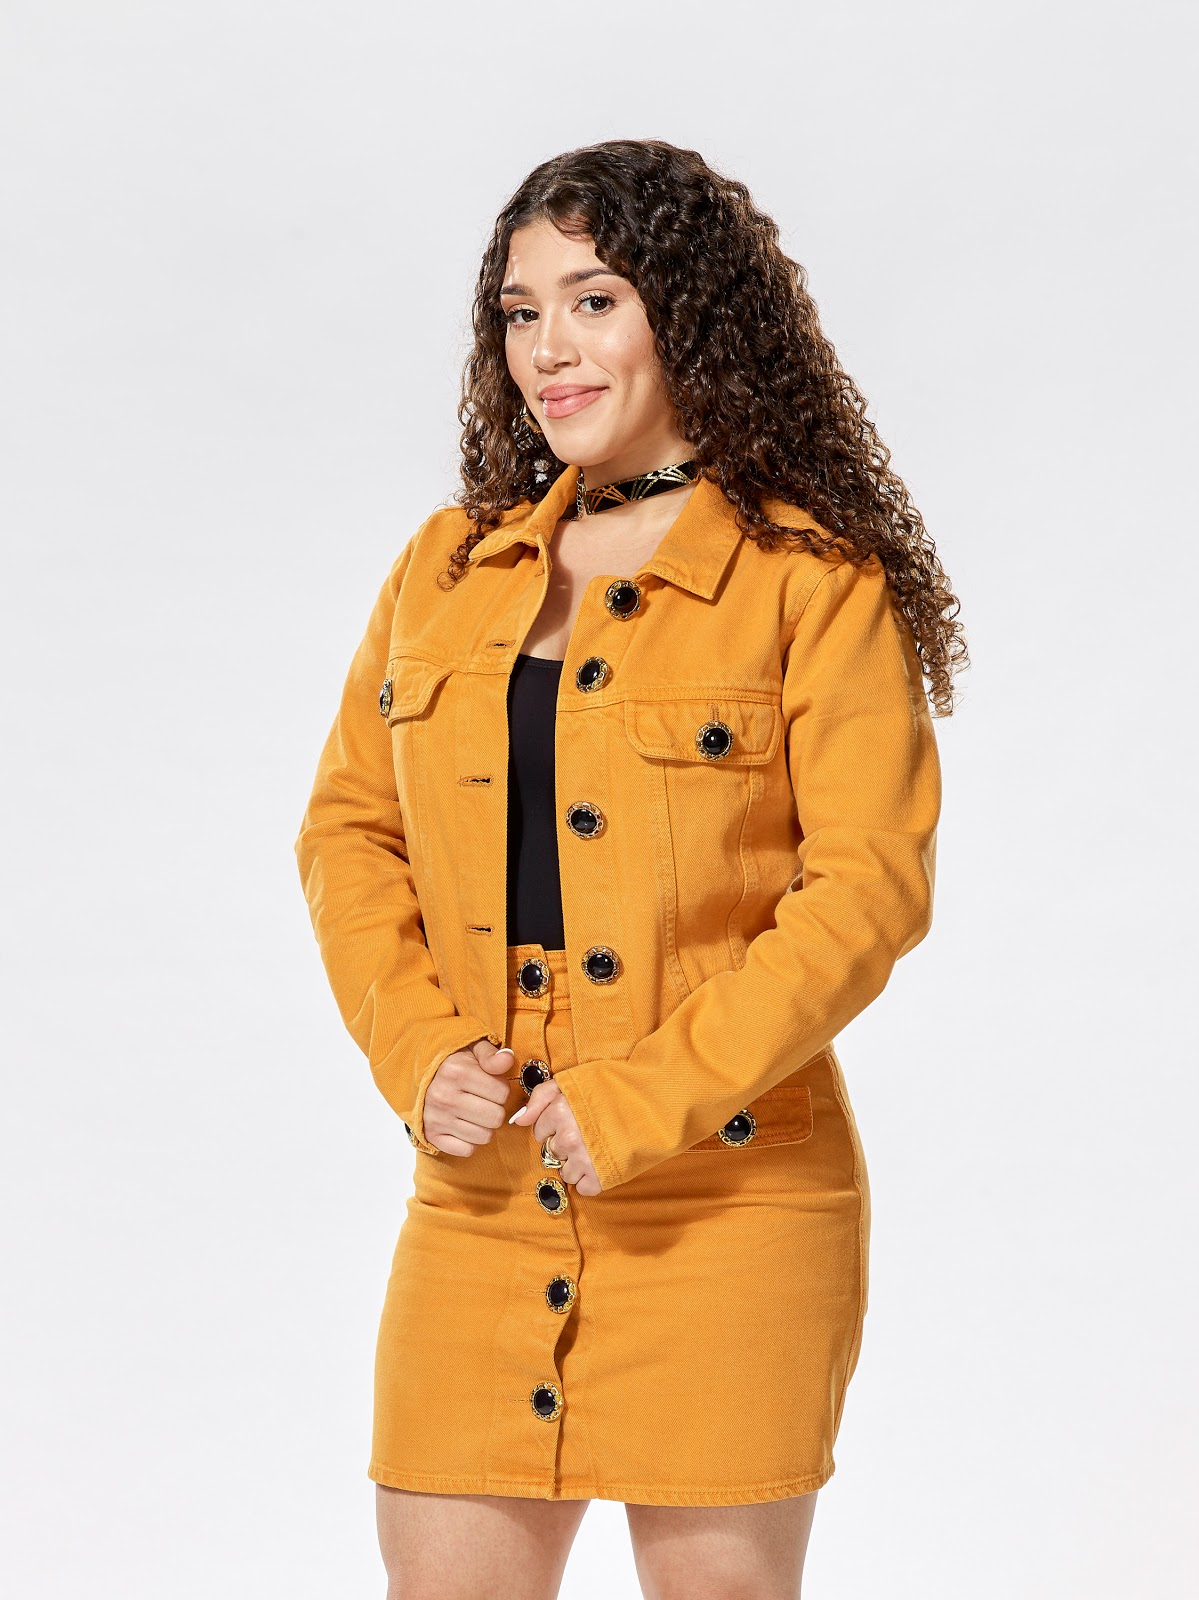 Hope I made my Latinos proud': San Antonio contestant on 'The Voice'  advances to live shows